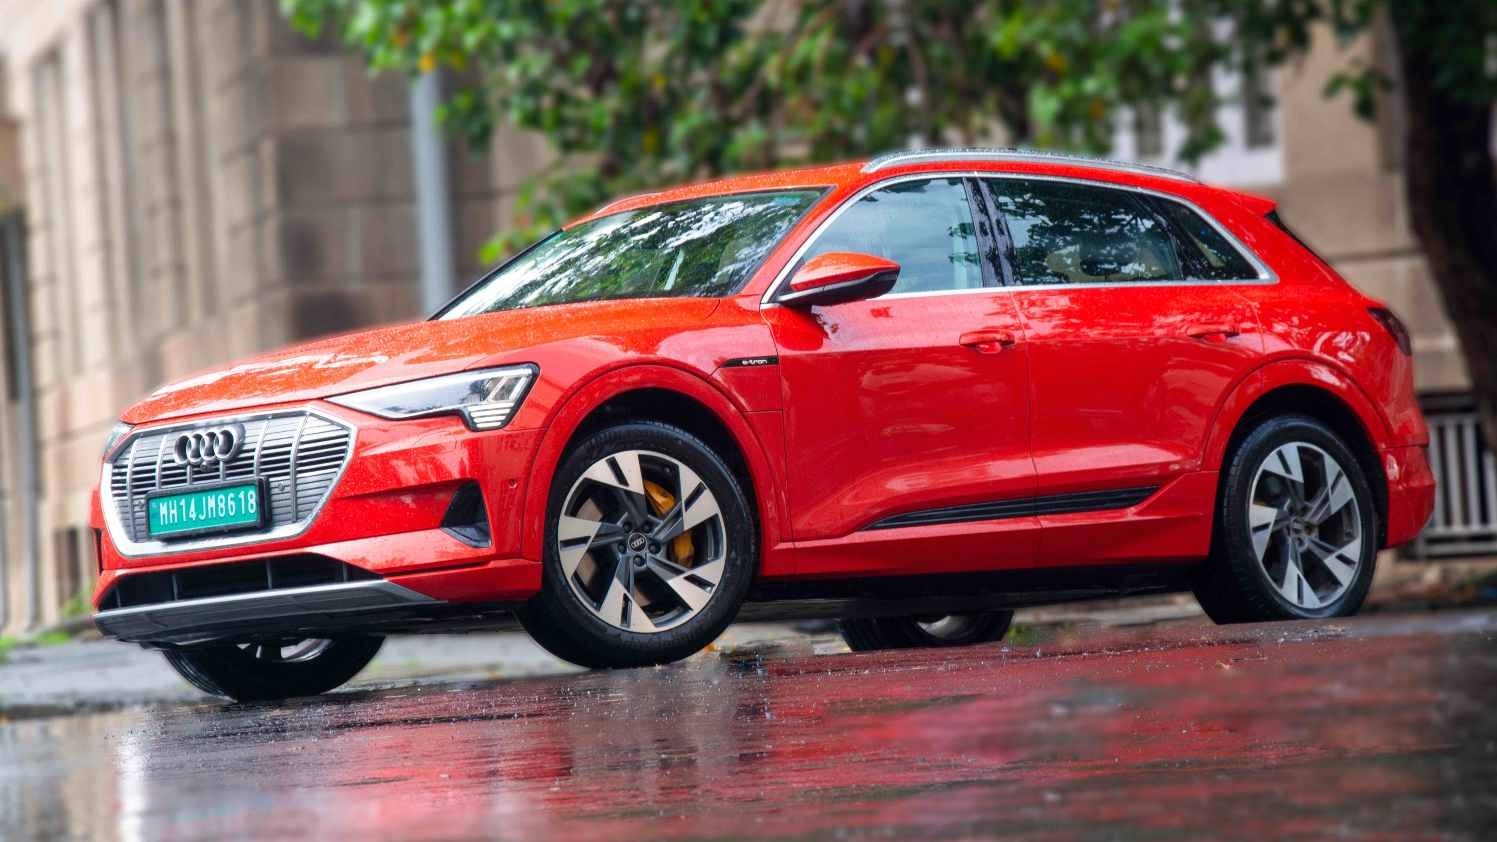 Owners of the Audi e-tron can use the download options at Audi dealerships free of charge from the end of 2021. Photo: Audi India